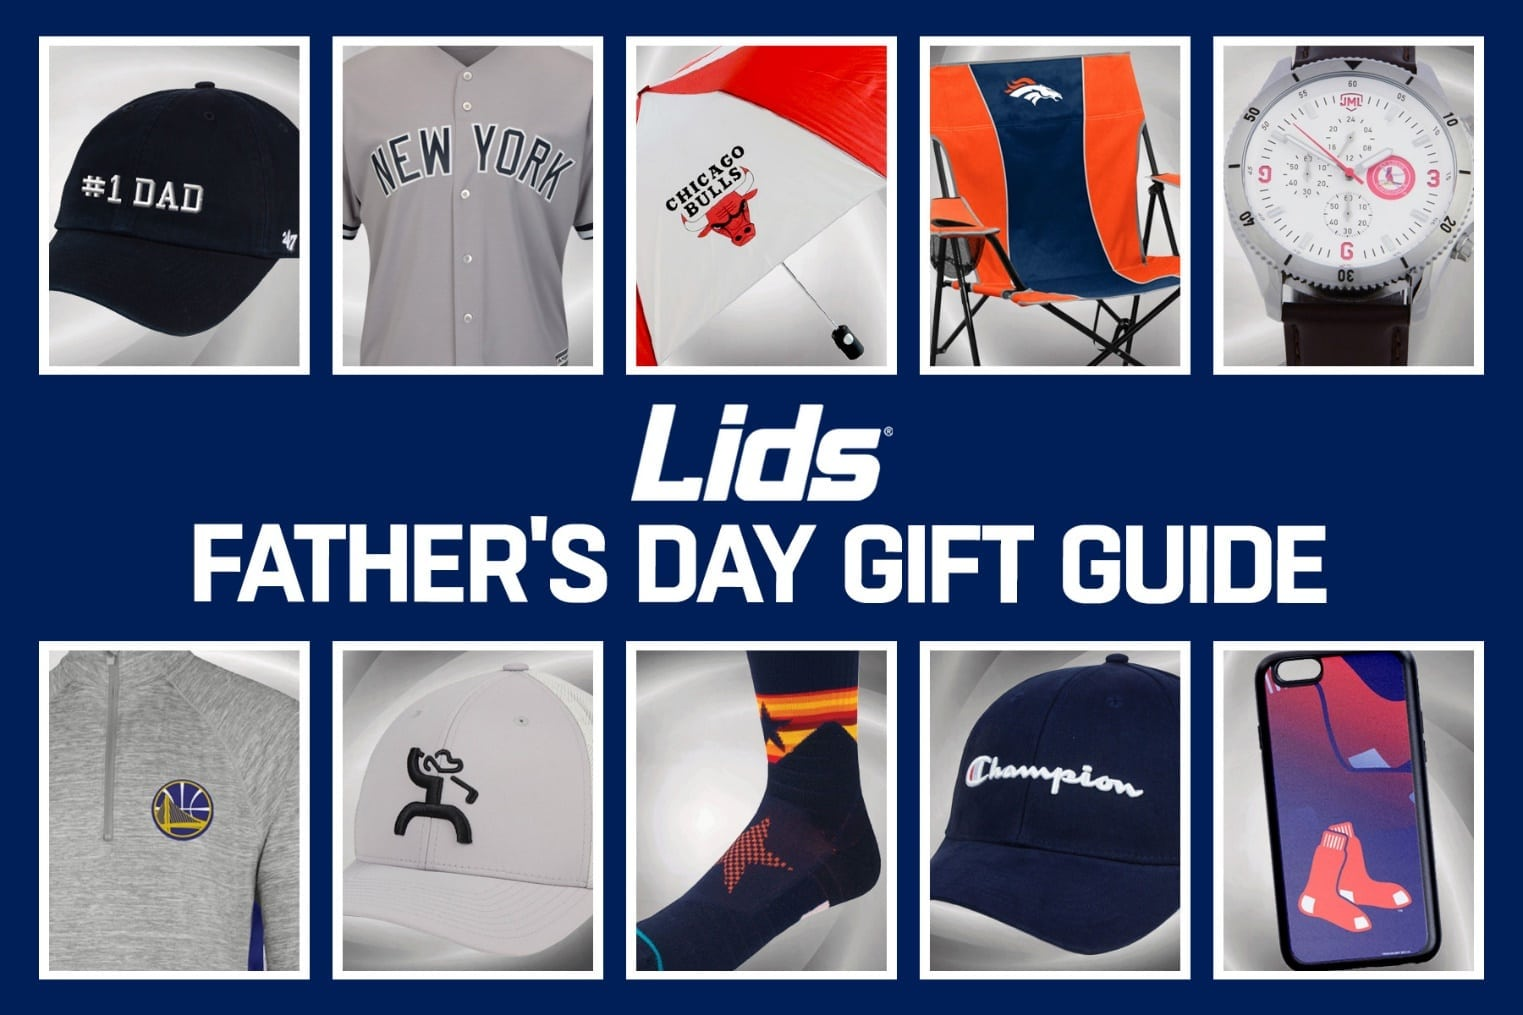 Lids.com Father's Day Gift Guide 2018